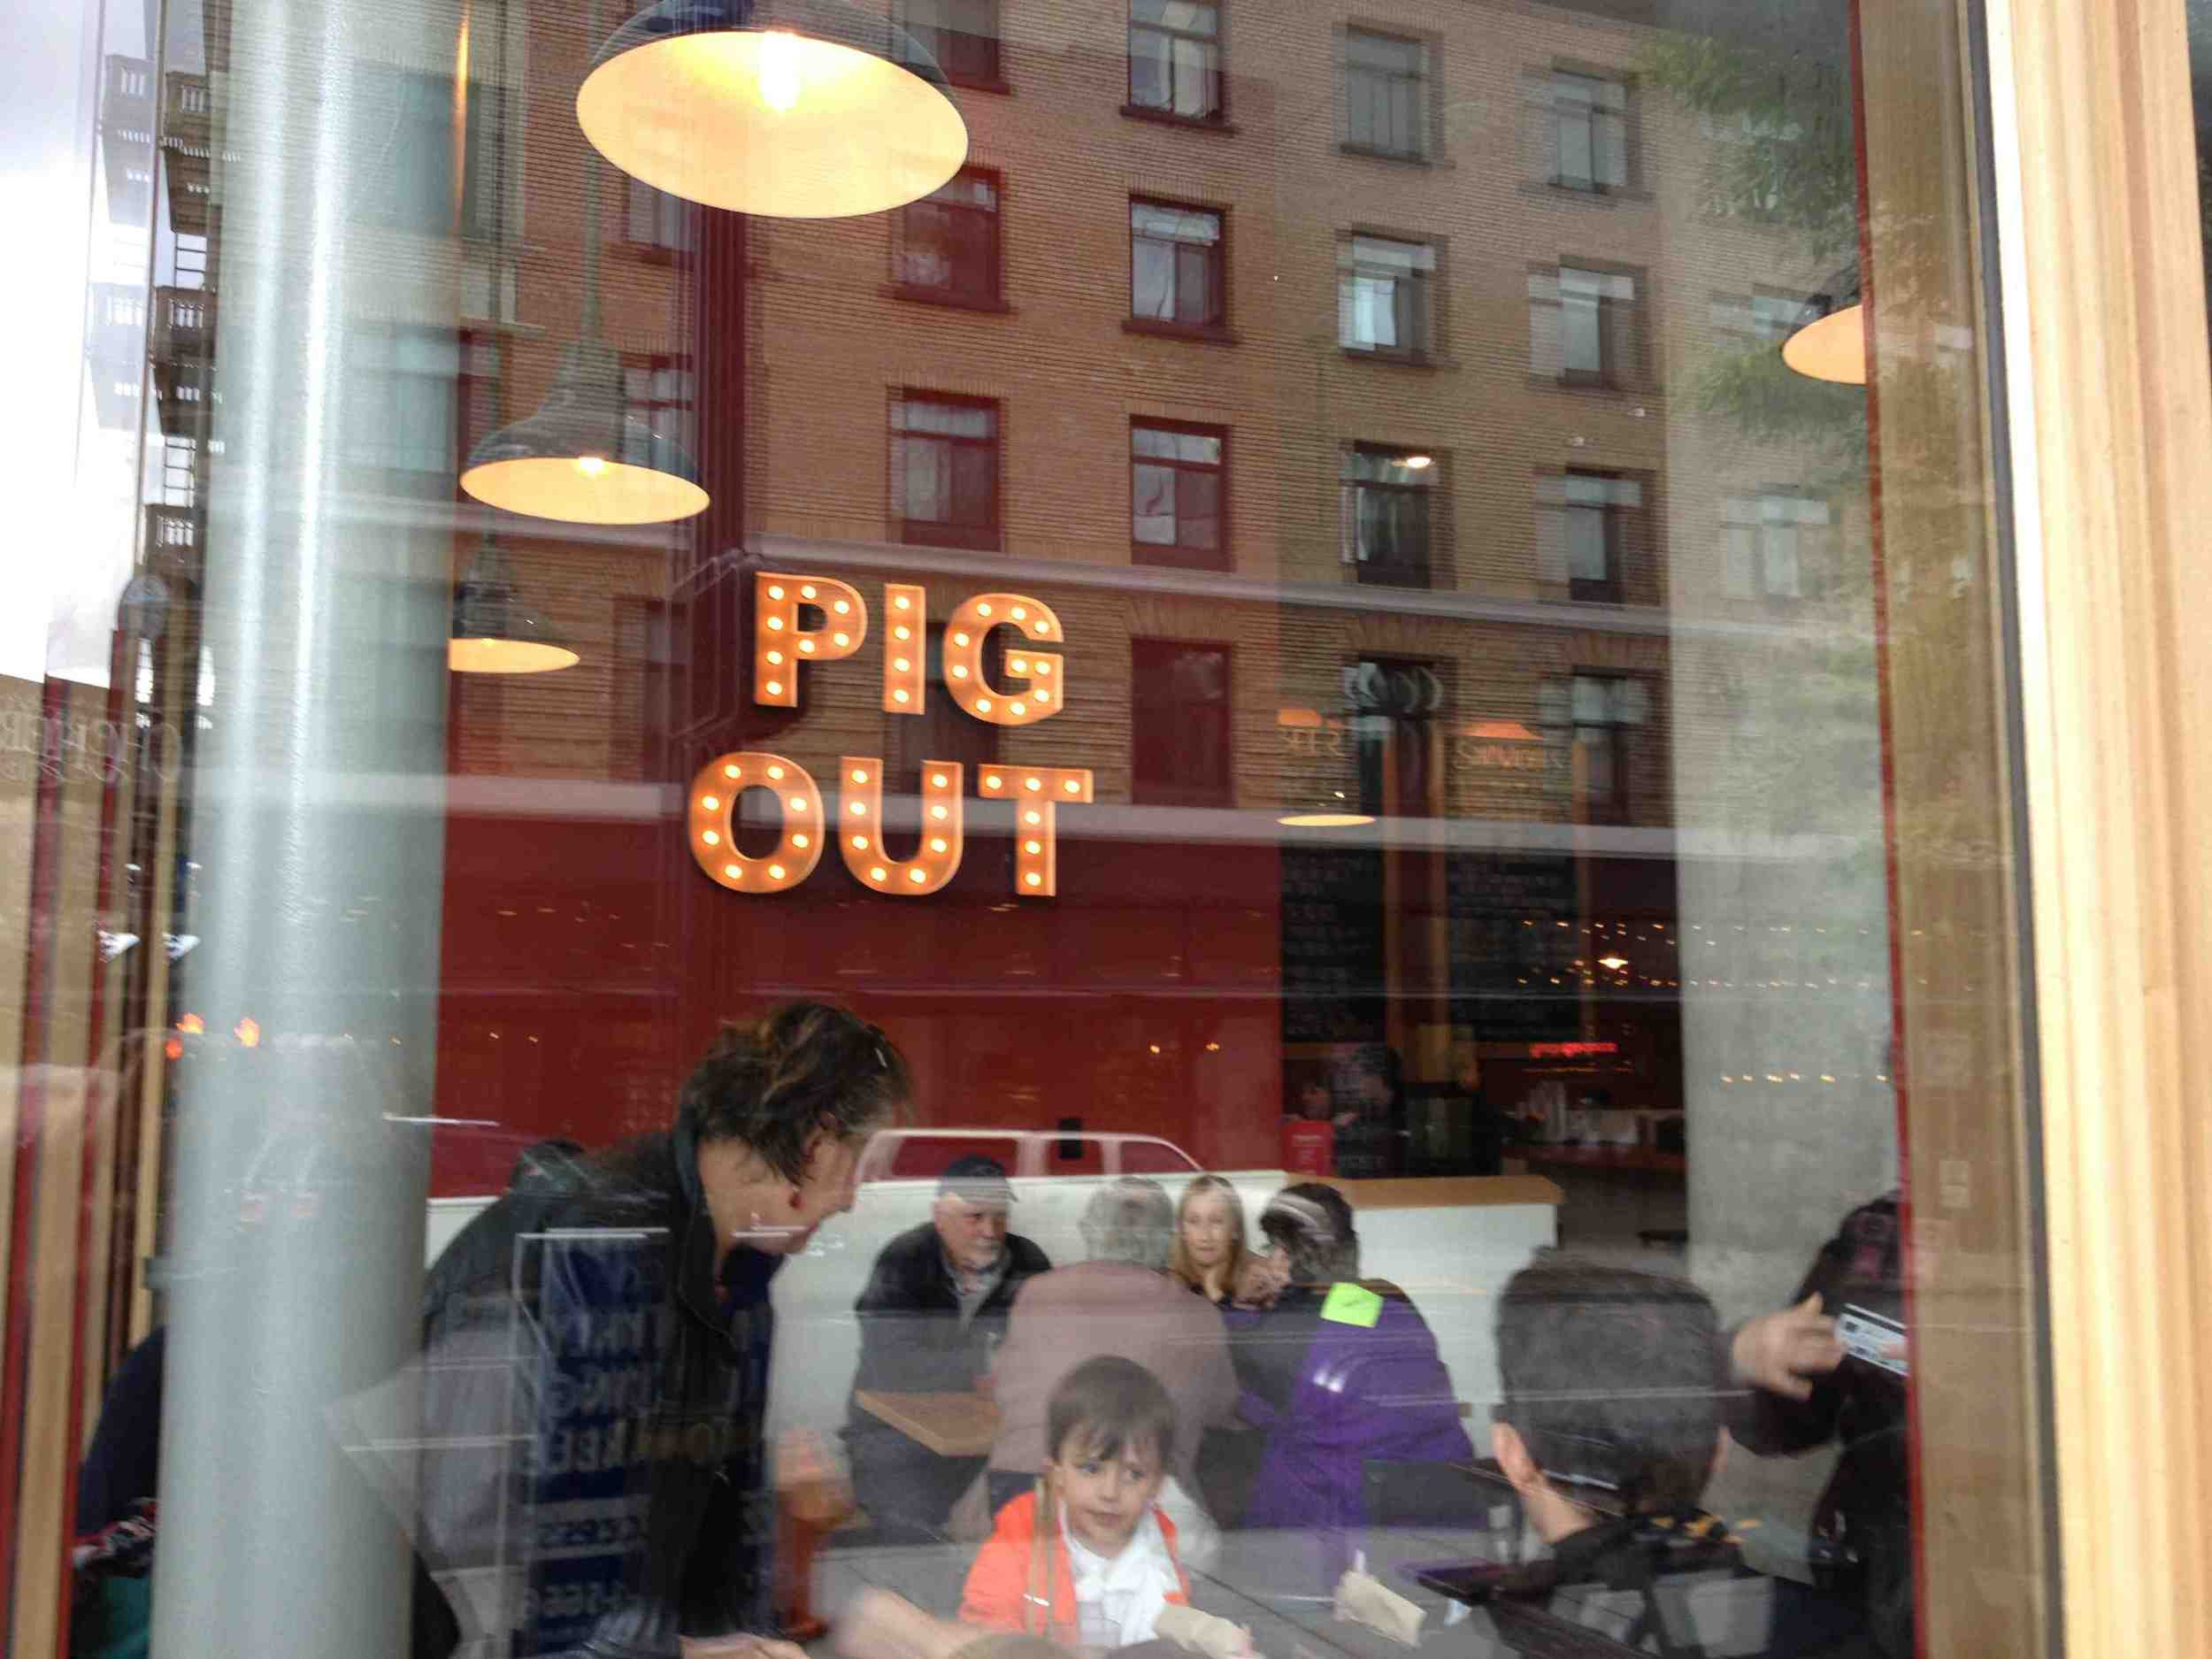 Portland is know for its street food i.e. food carts that are clustered into pods on empty lots throughout the city and in downtown parking lots. In this case the food cart has become a bricks and mortar restaurant. The name is not Pig Out, but that is the brand.